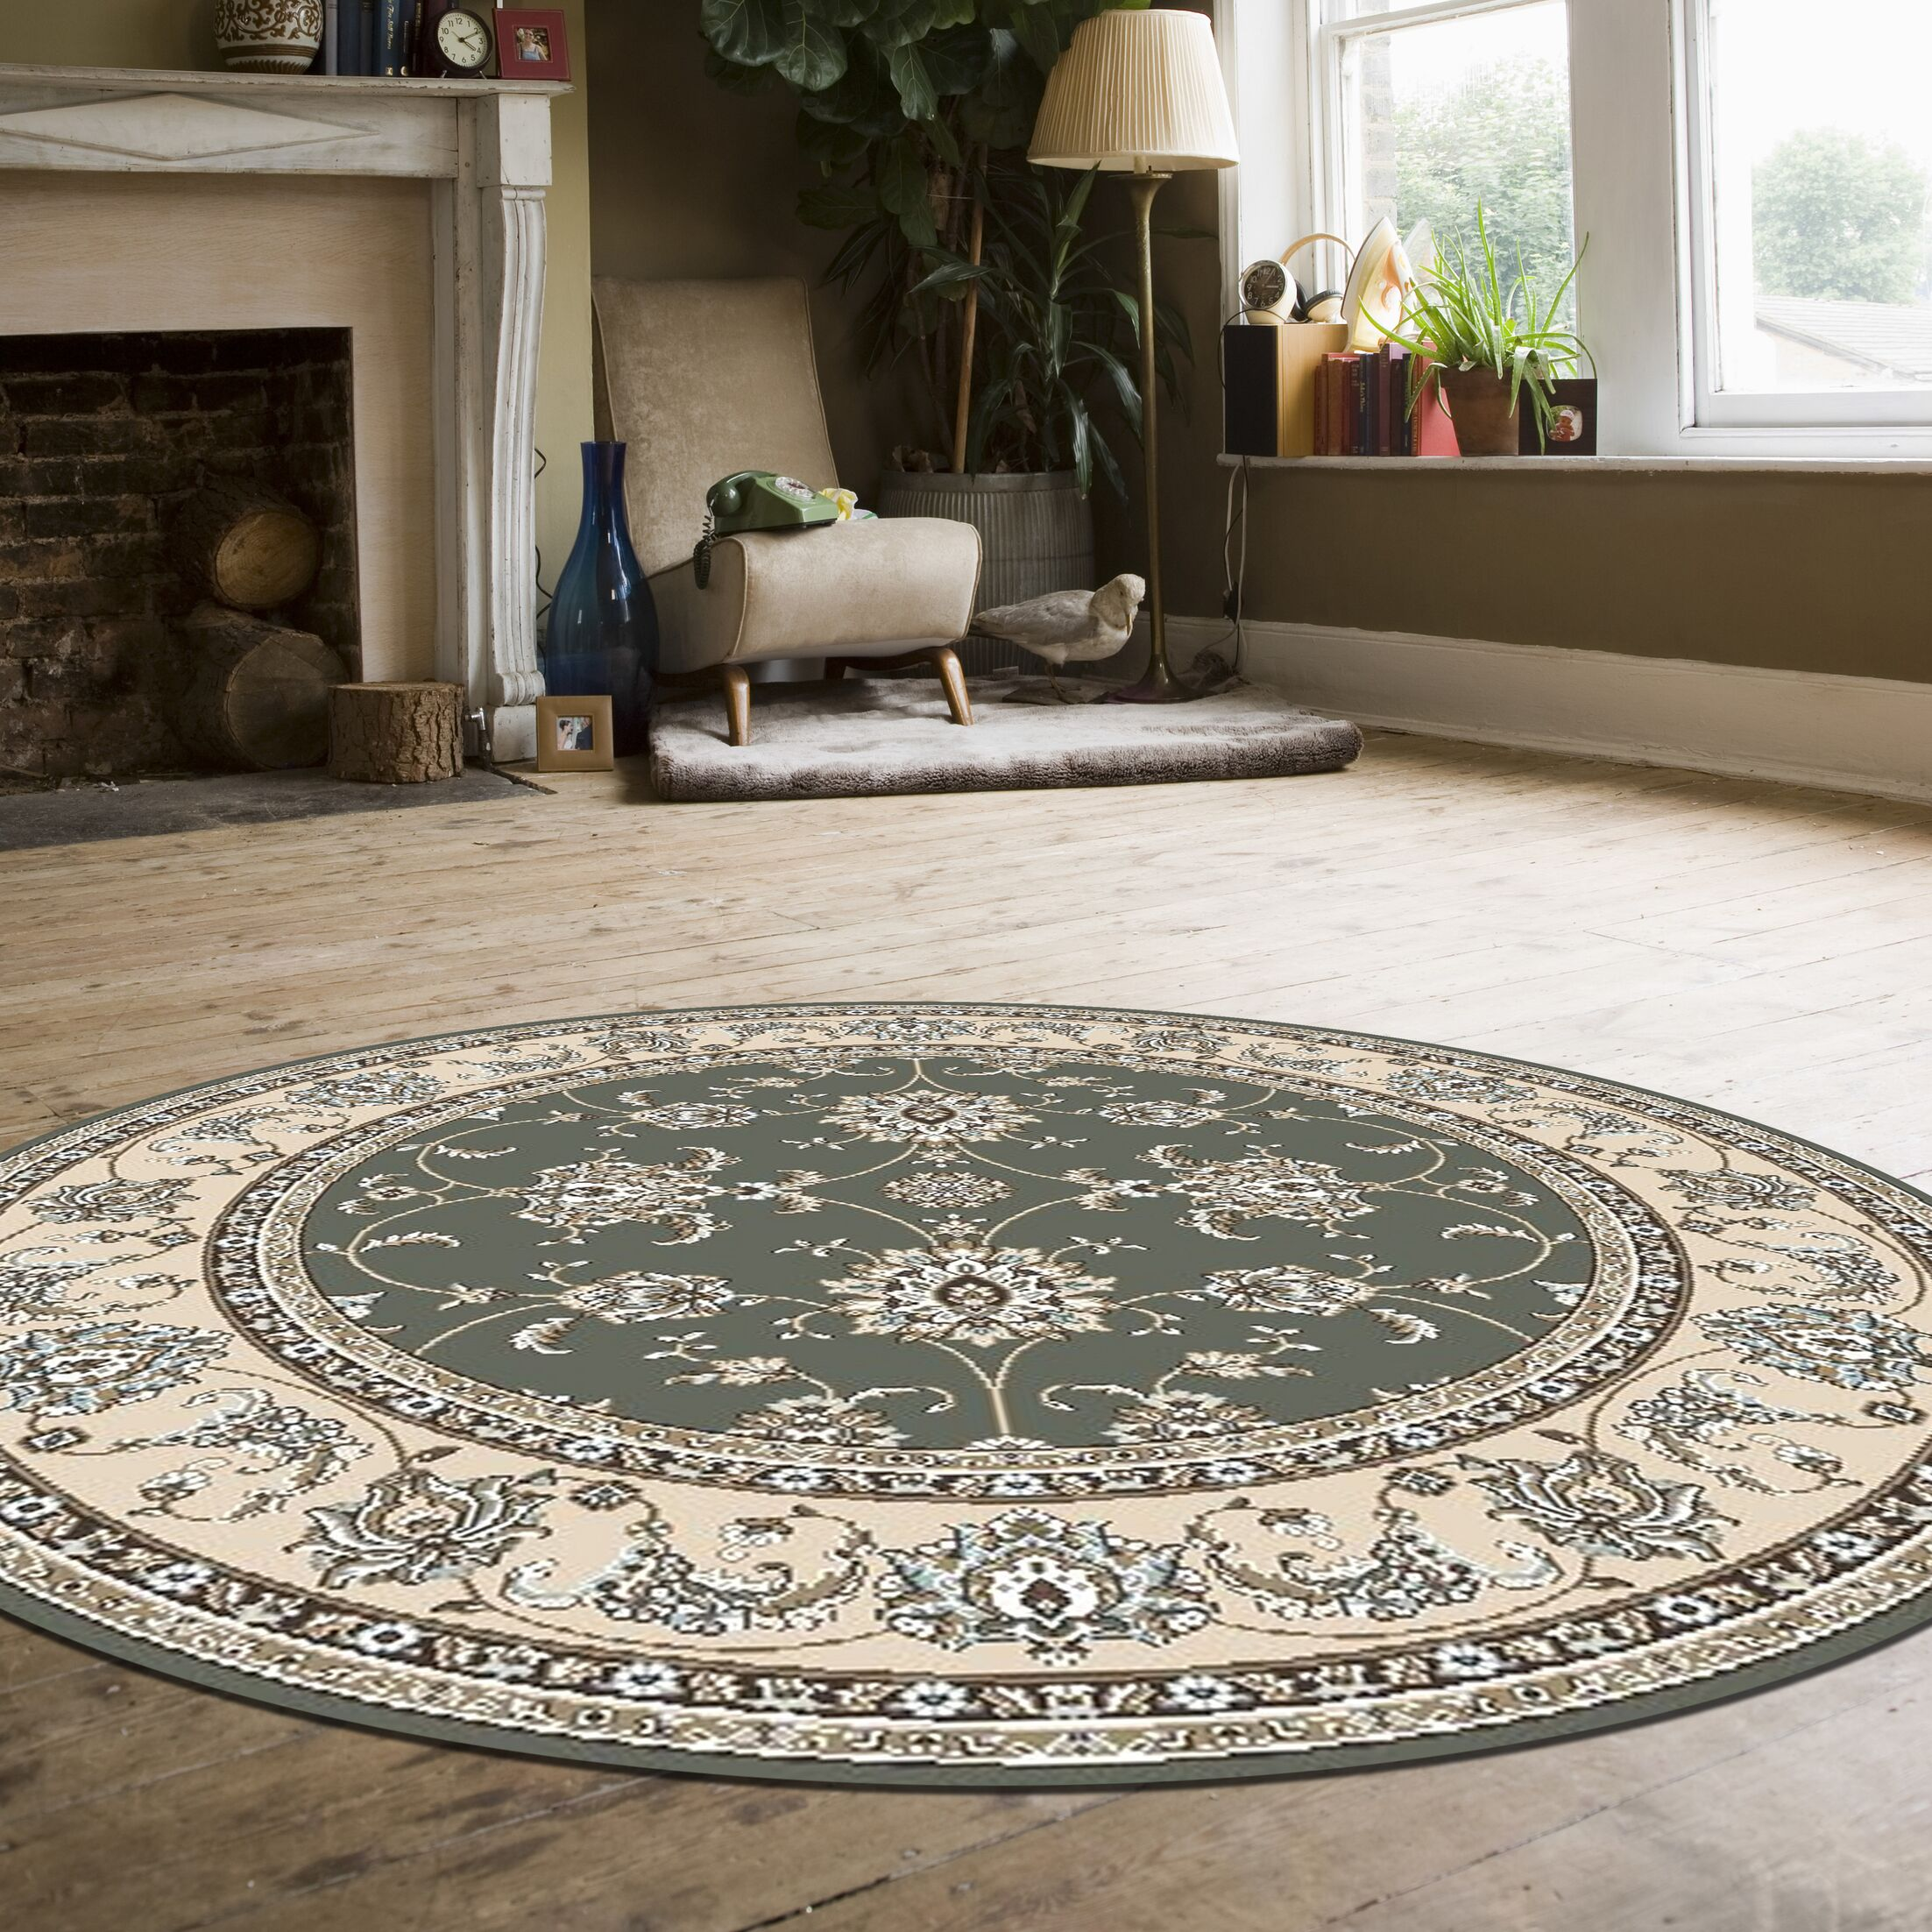 Ackermanville Green Area Rug Rug Size: Round 5'3